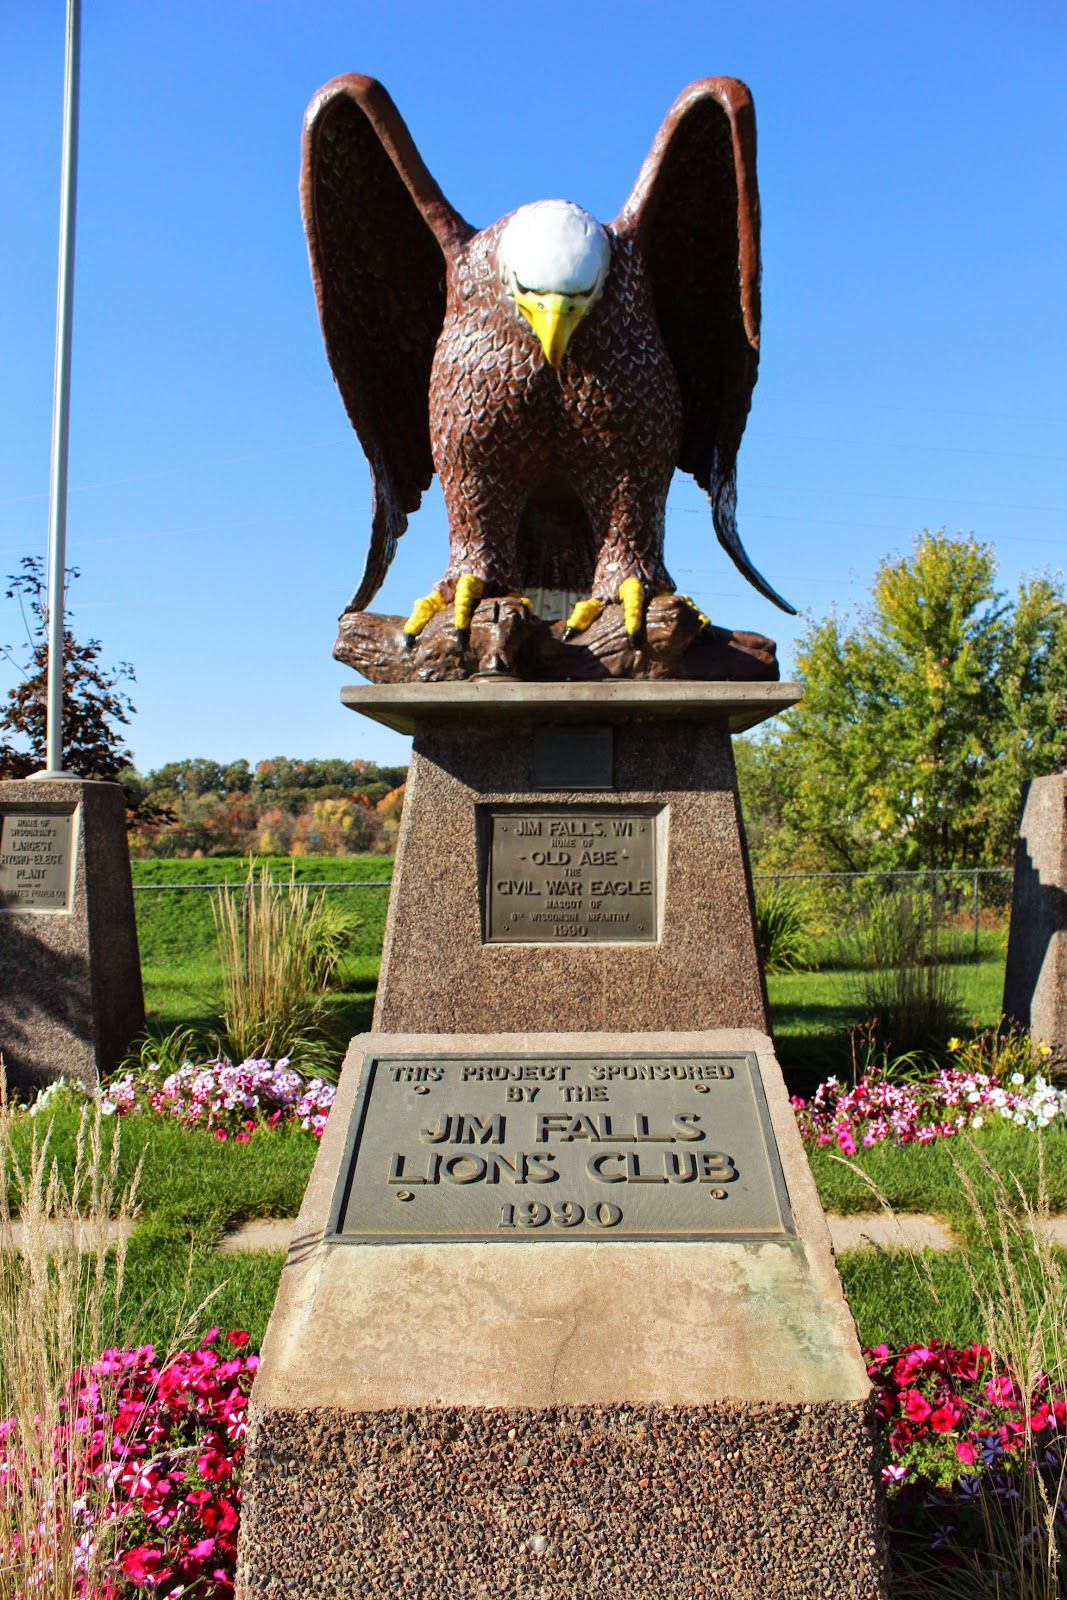 jim falls Browse the most recent jim falls, wisconsin obituaries and condolences celebrate and remember the lives we have lost in jim falls, wisconsin.